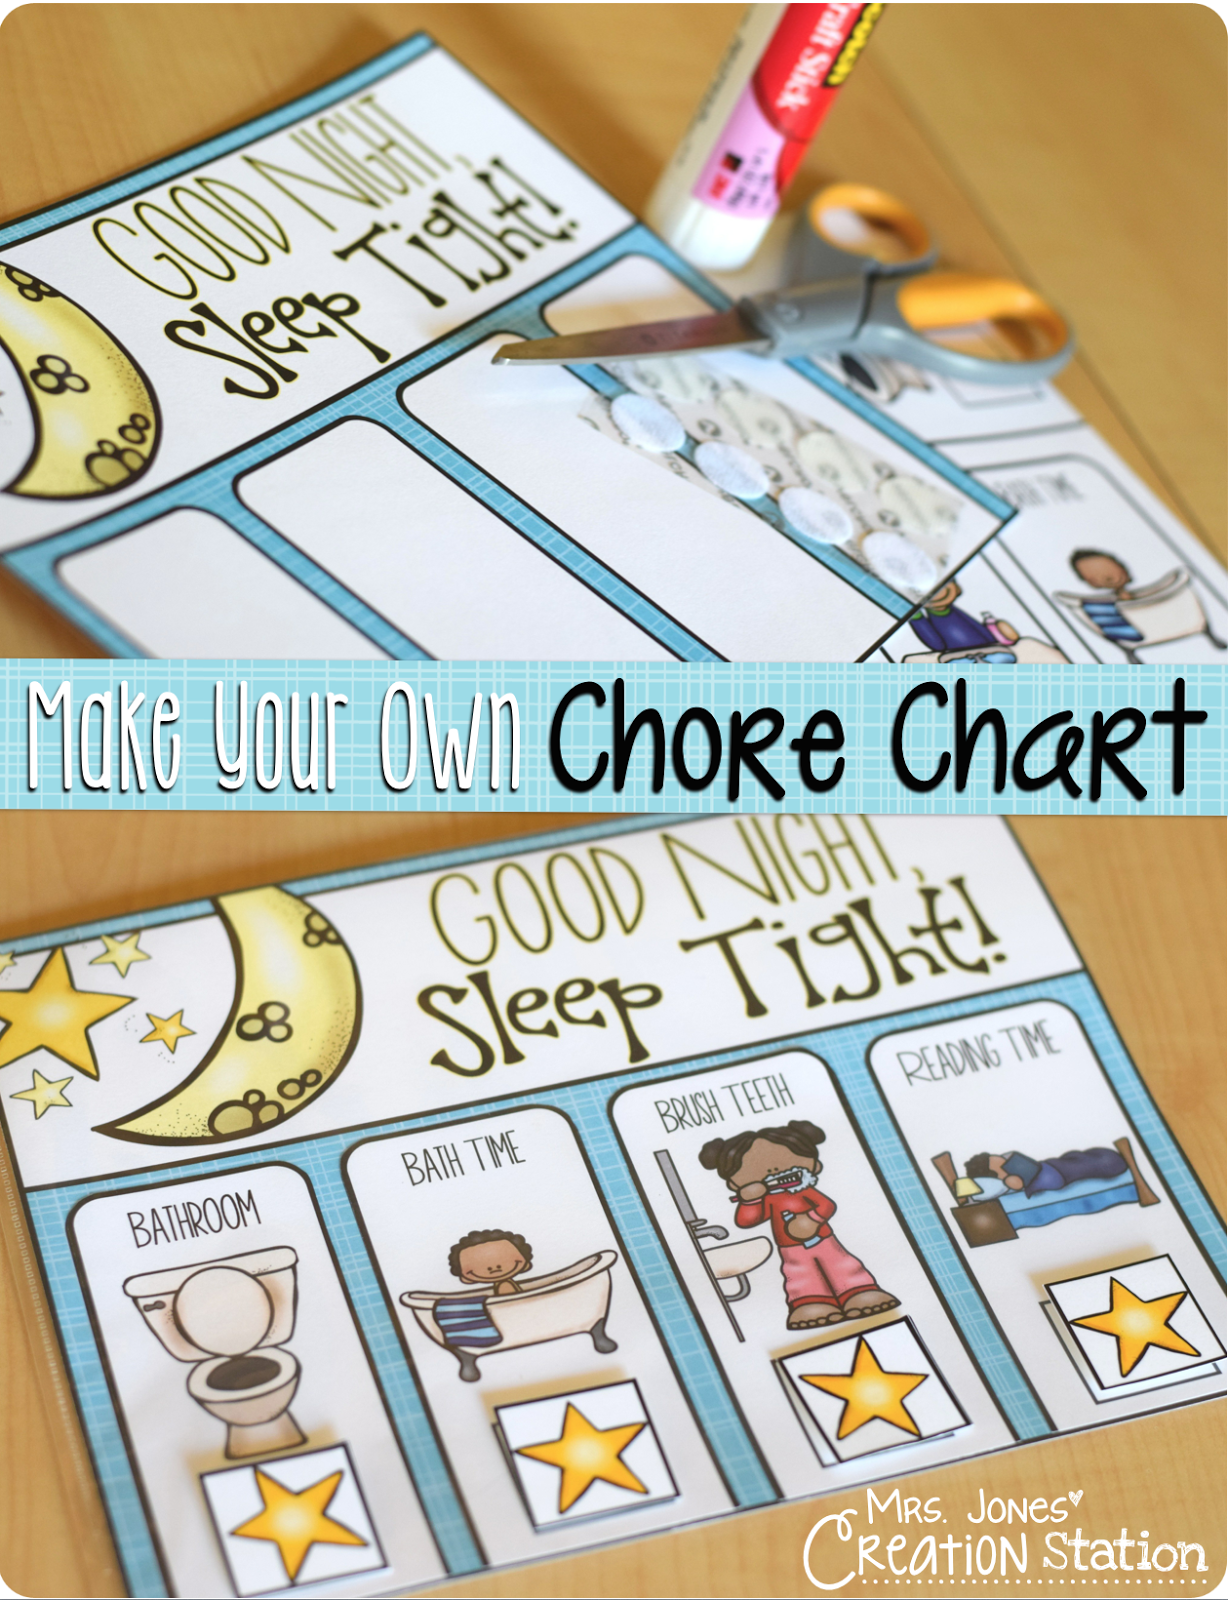 Creating Your Perfect Minimalist Wardrobe In Stages: How To Make Your Own Chore Chart...